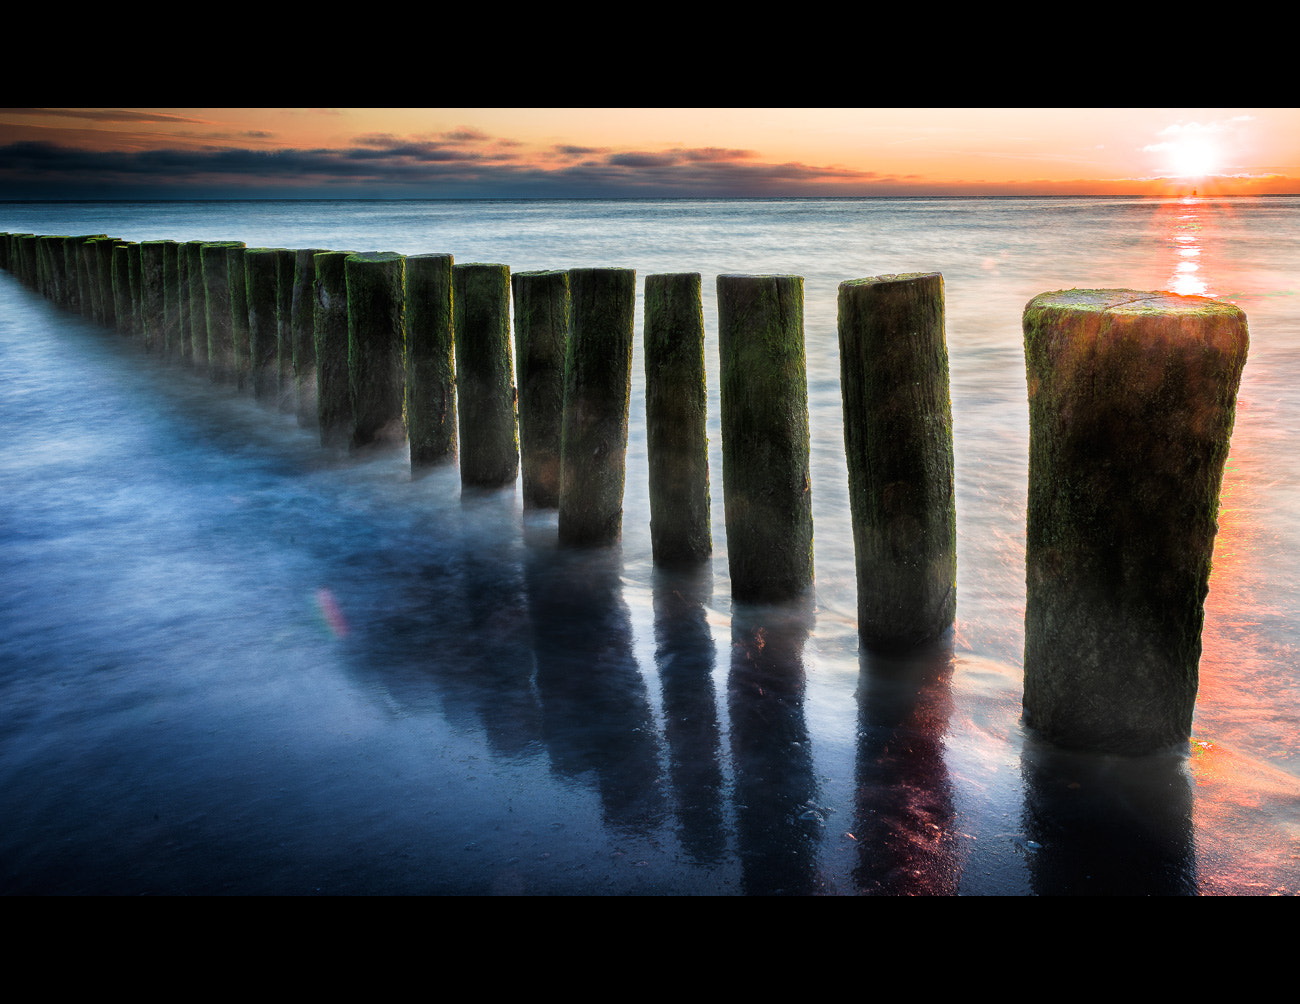 Photograph Separate by Armin Barth on 500px